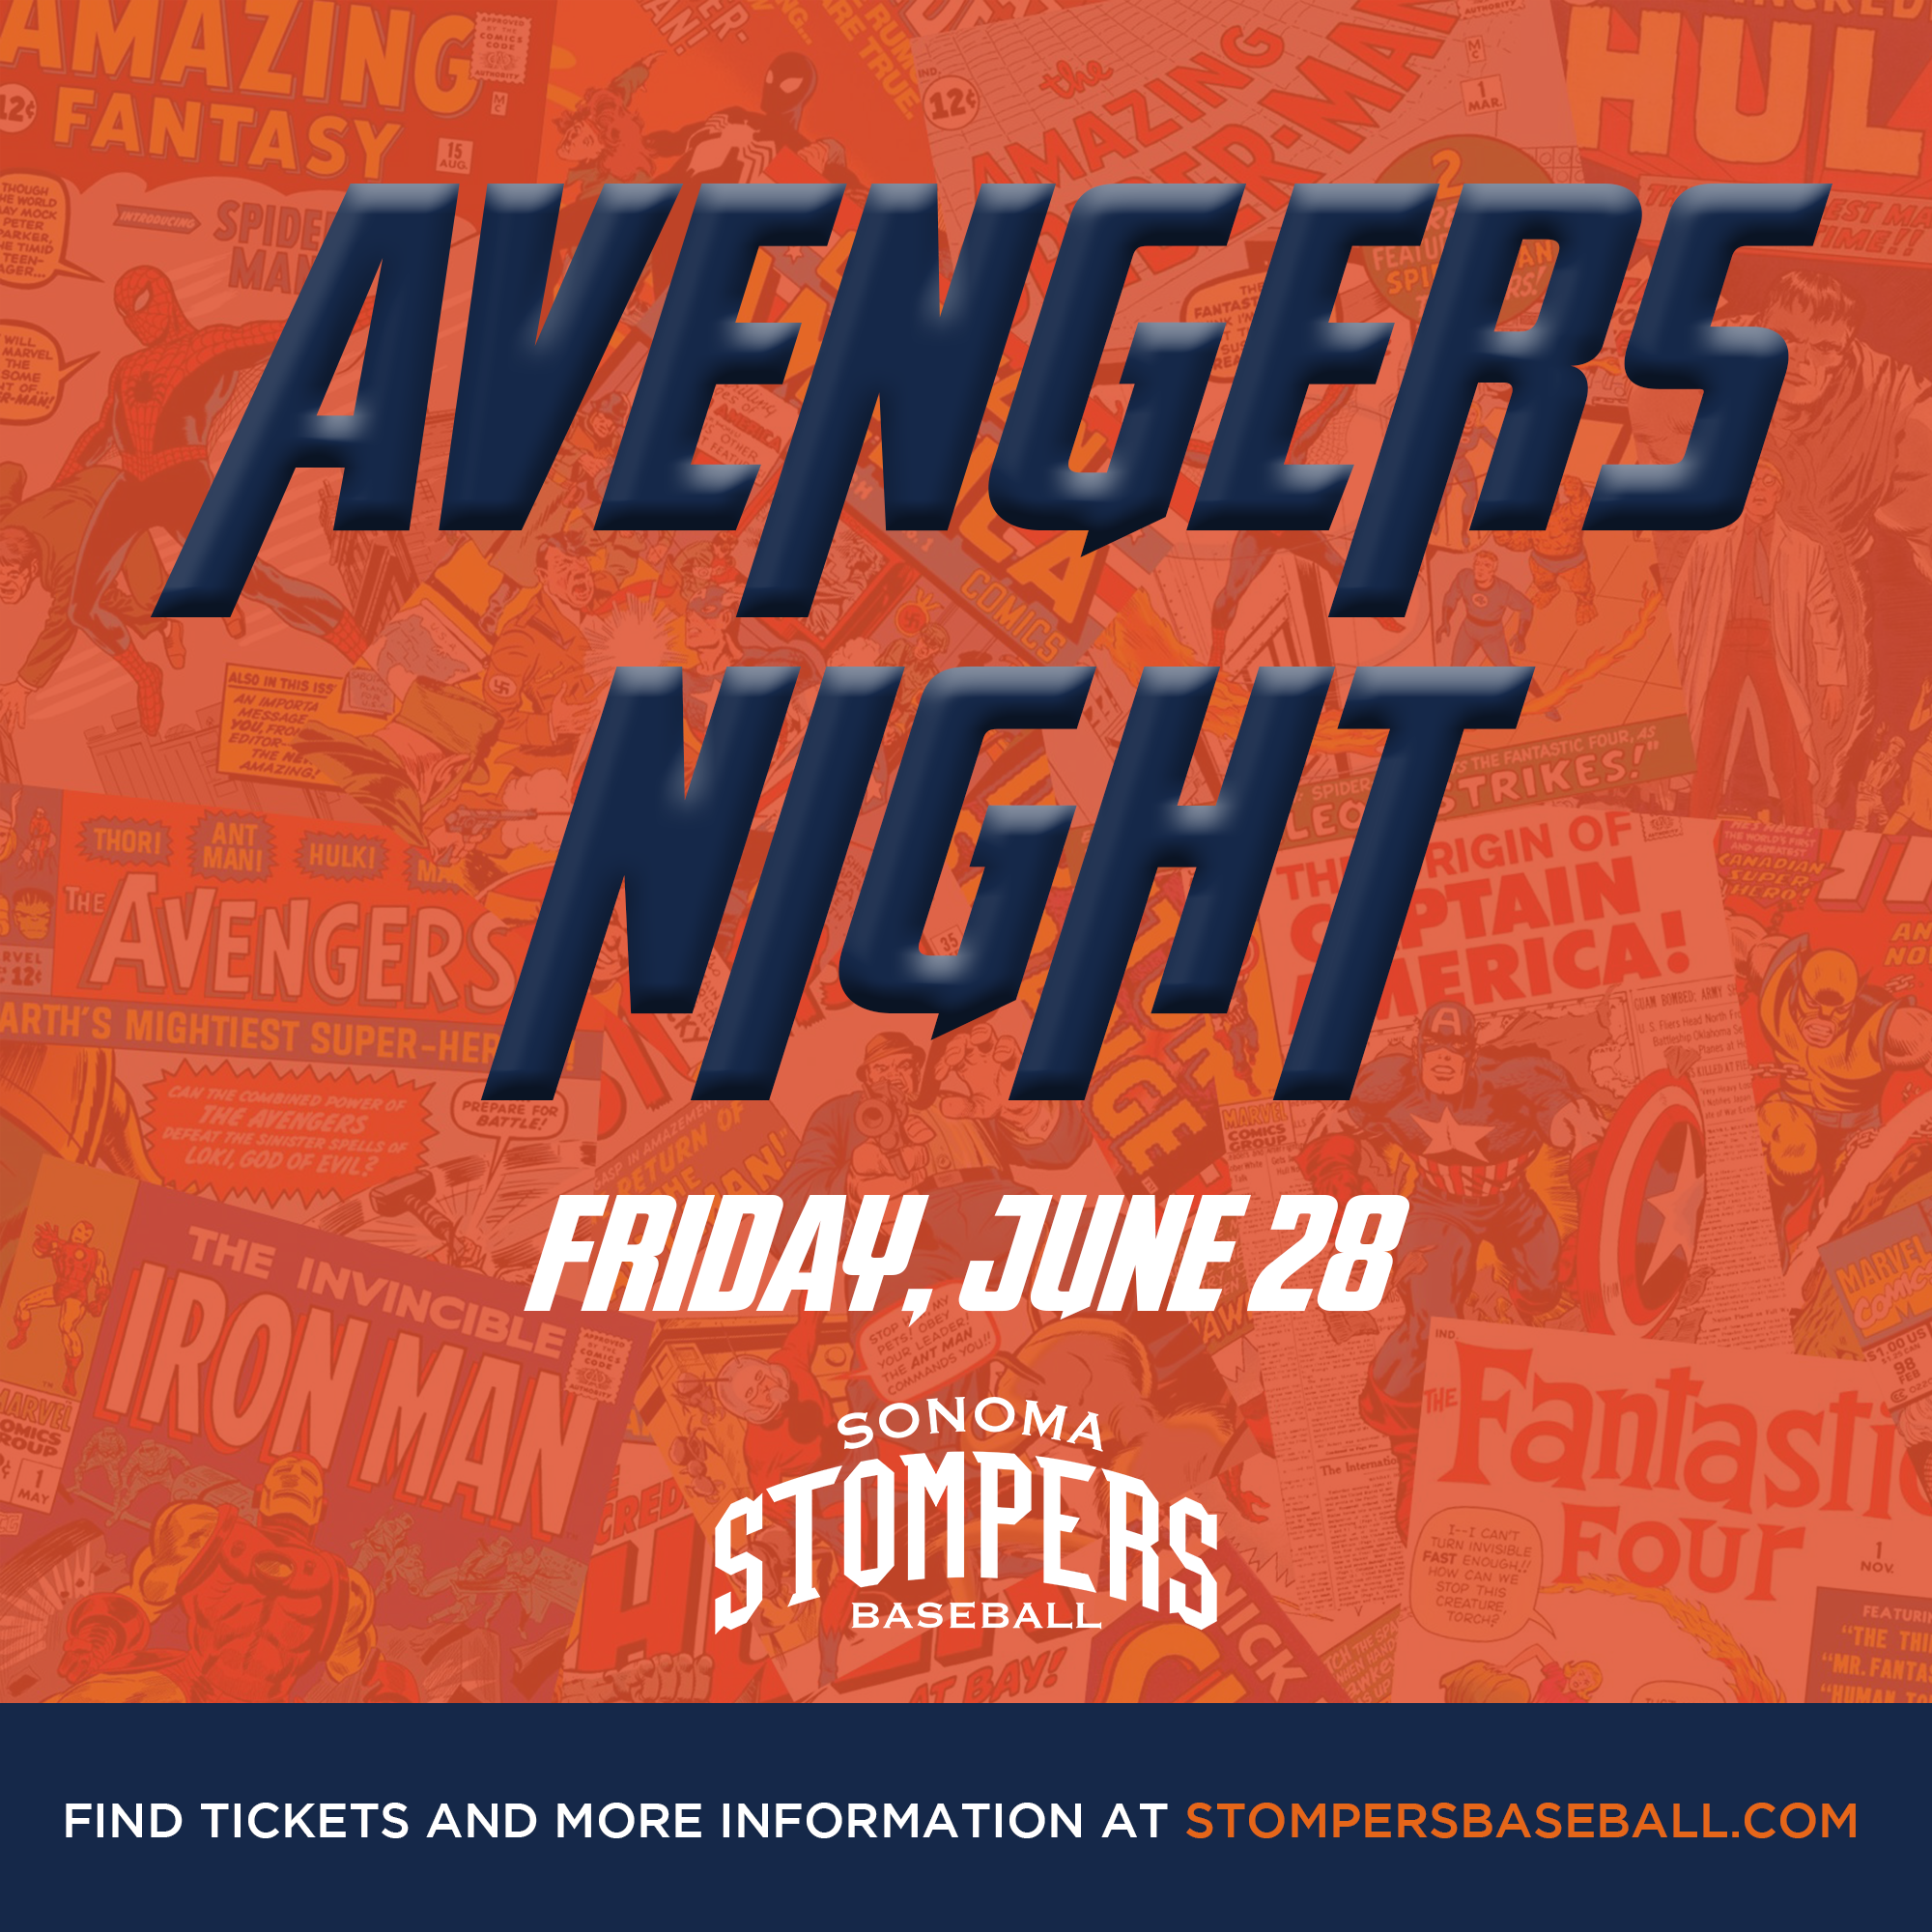 June 28: Avengers Night - Come out to the ballpark for Avengers night! We will have special games and a costume contest!